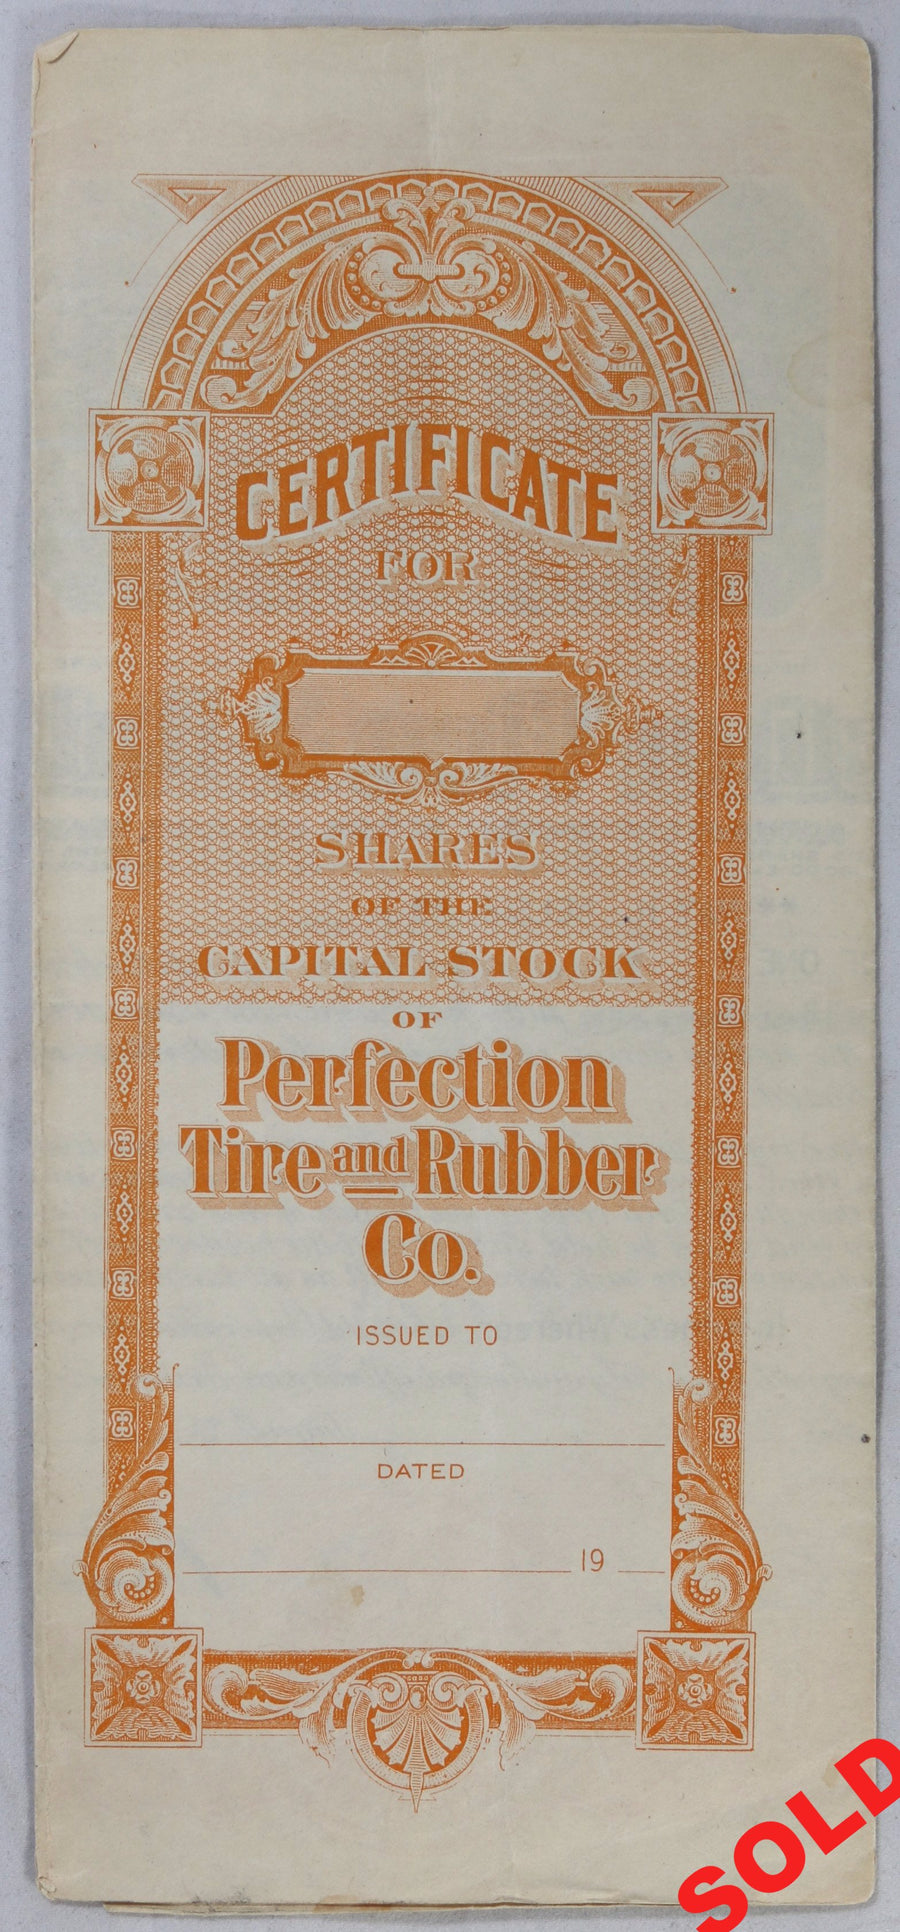 1921 Perfection Tire & Rubber Co. stock certificate (USA)